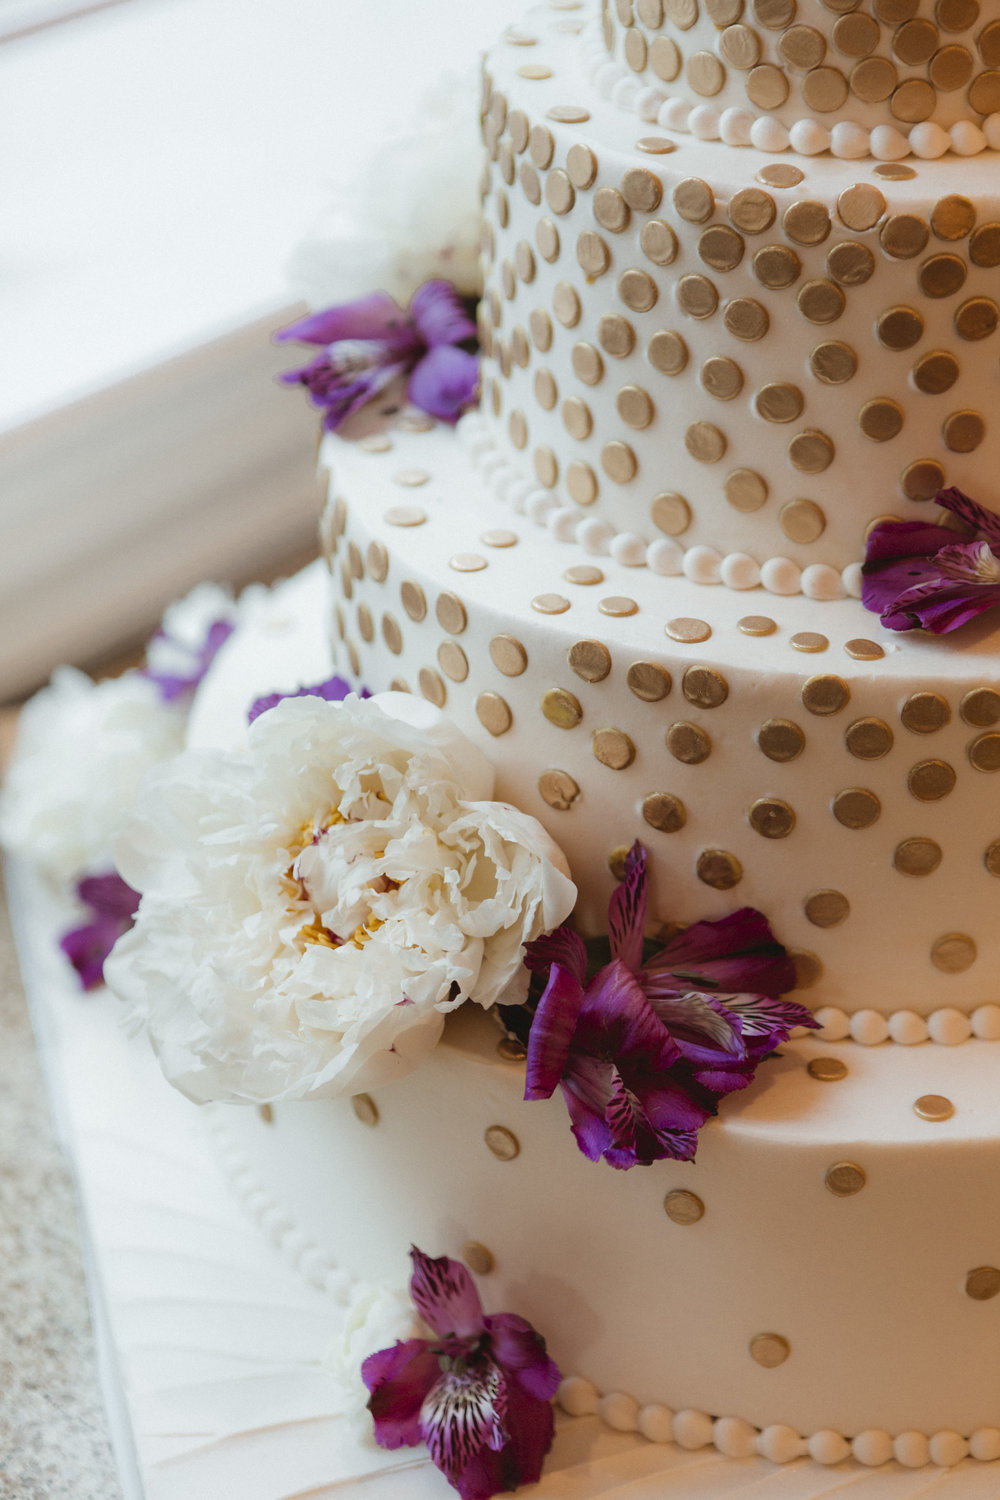 Gold polkadot cake from Palermo's - Estate at Florentine Gardens wedding - Hudson Valley Wedding - Kelsey & Anish's wedding - Amy Sims Photography